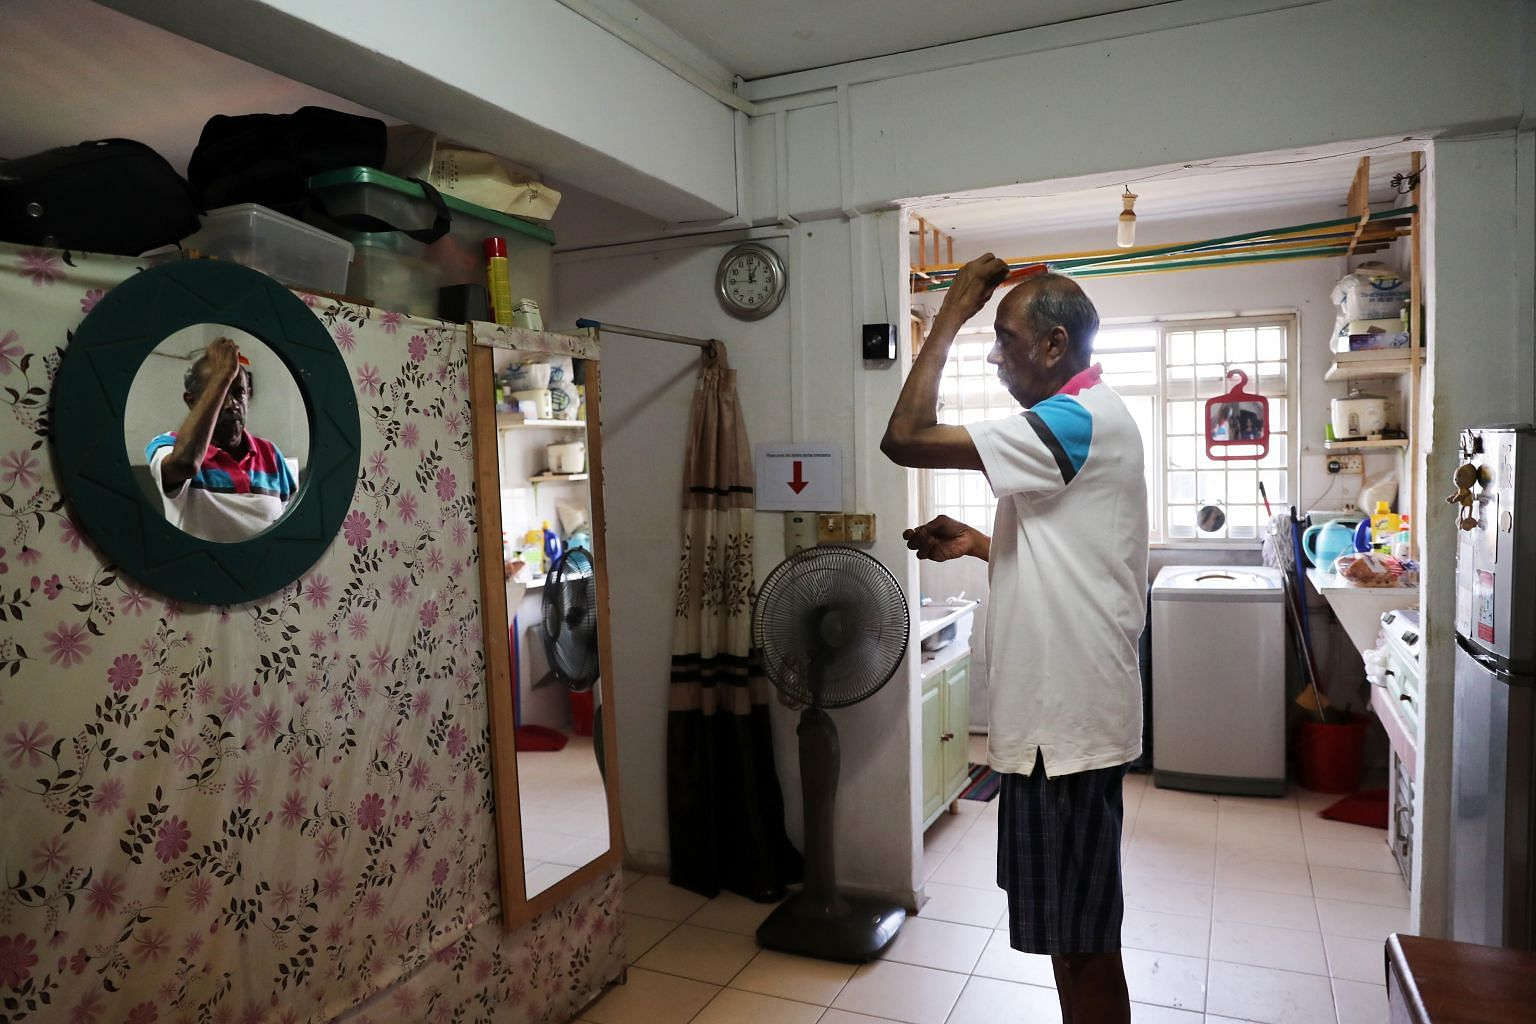 Mr Saravanamuthu Marimuthu, who lives alone in a one-room rental flat in Ang Mo Kio, was diagnosed with dementia in 2016. A home care associate of the Awwa dementia day care centre, situated at his block, checks in on him daily.